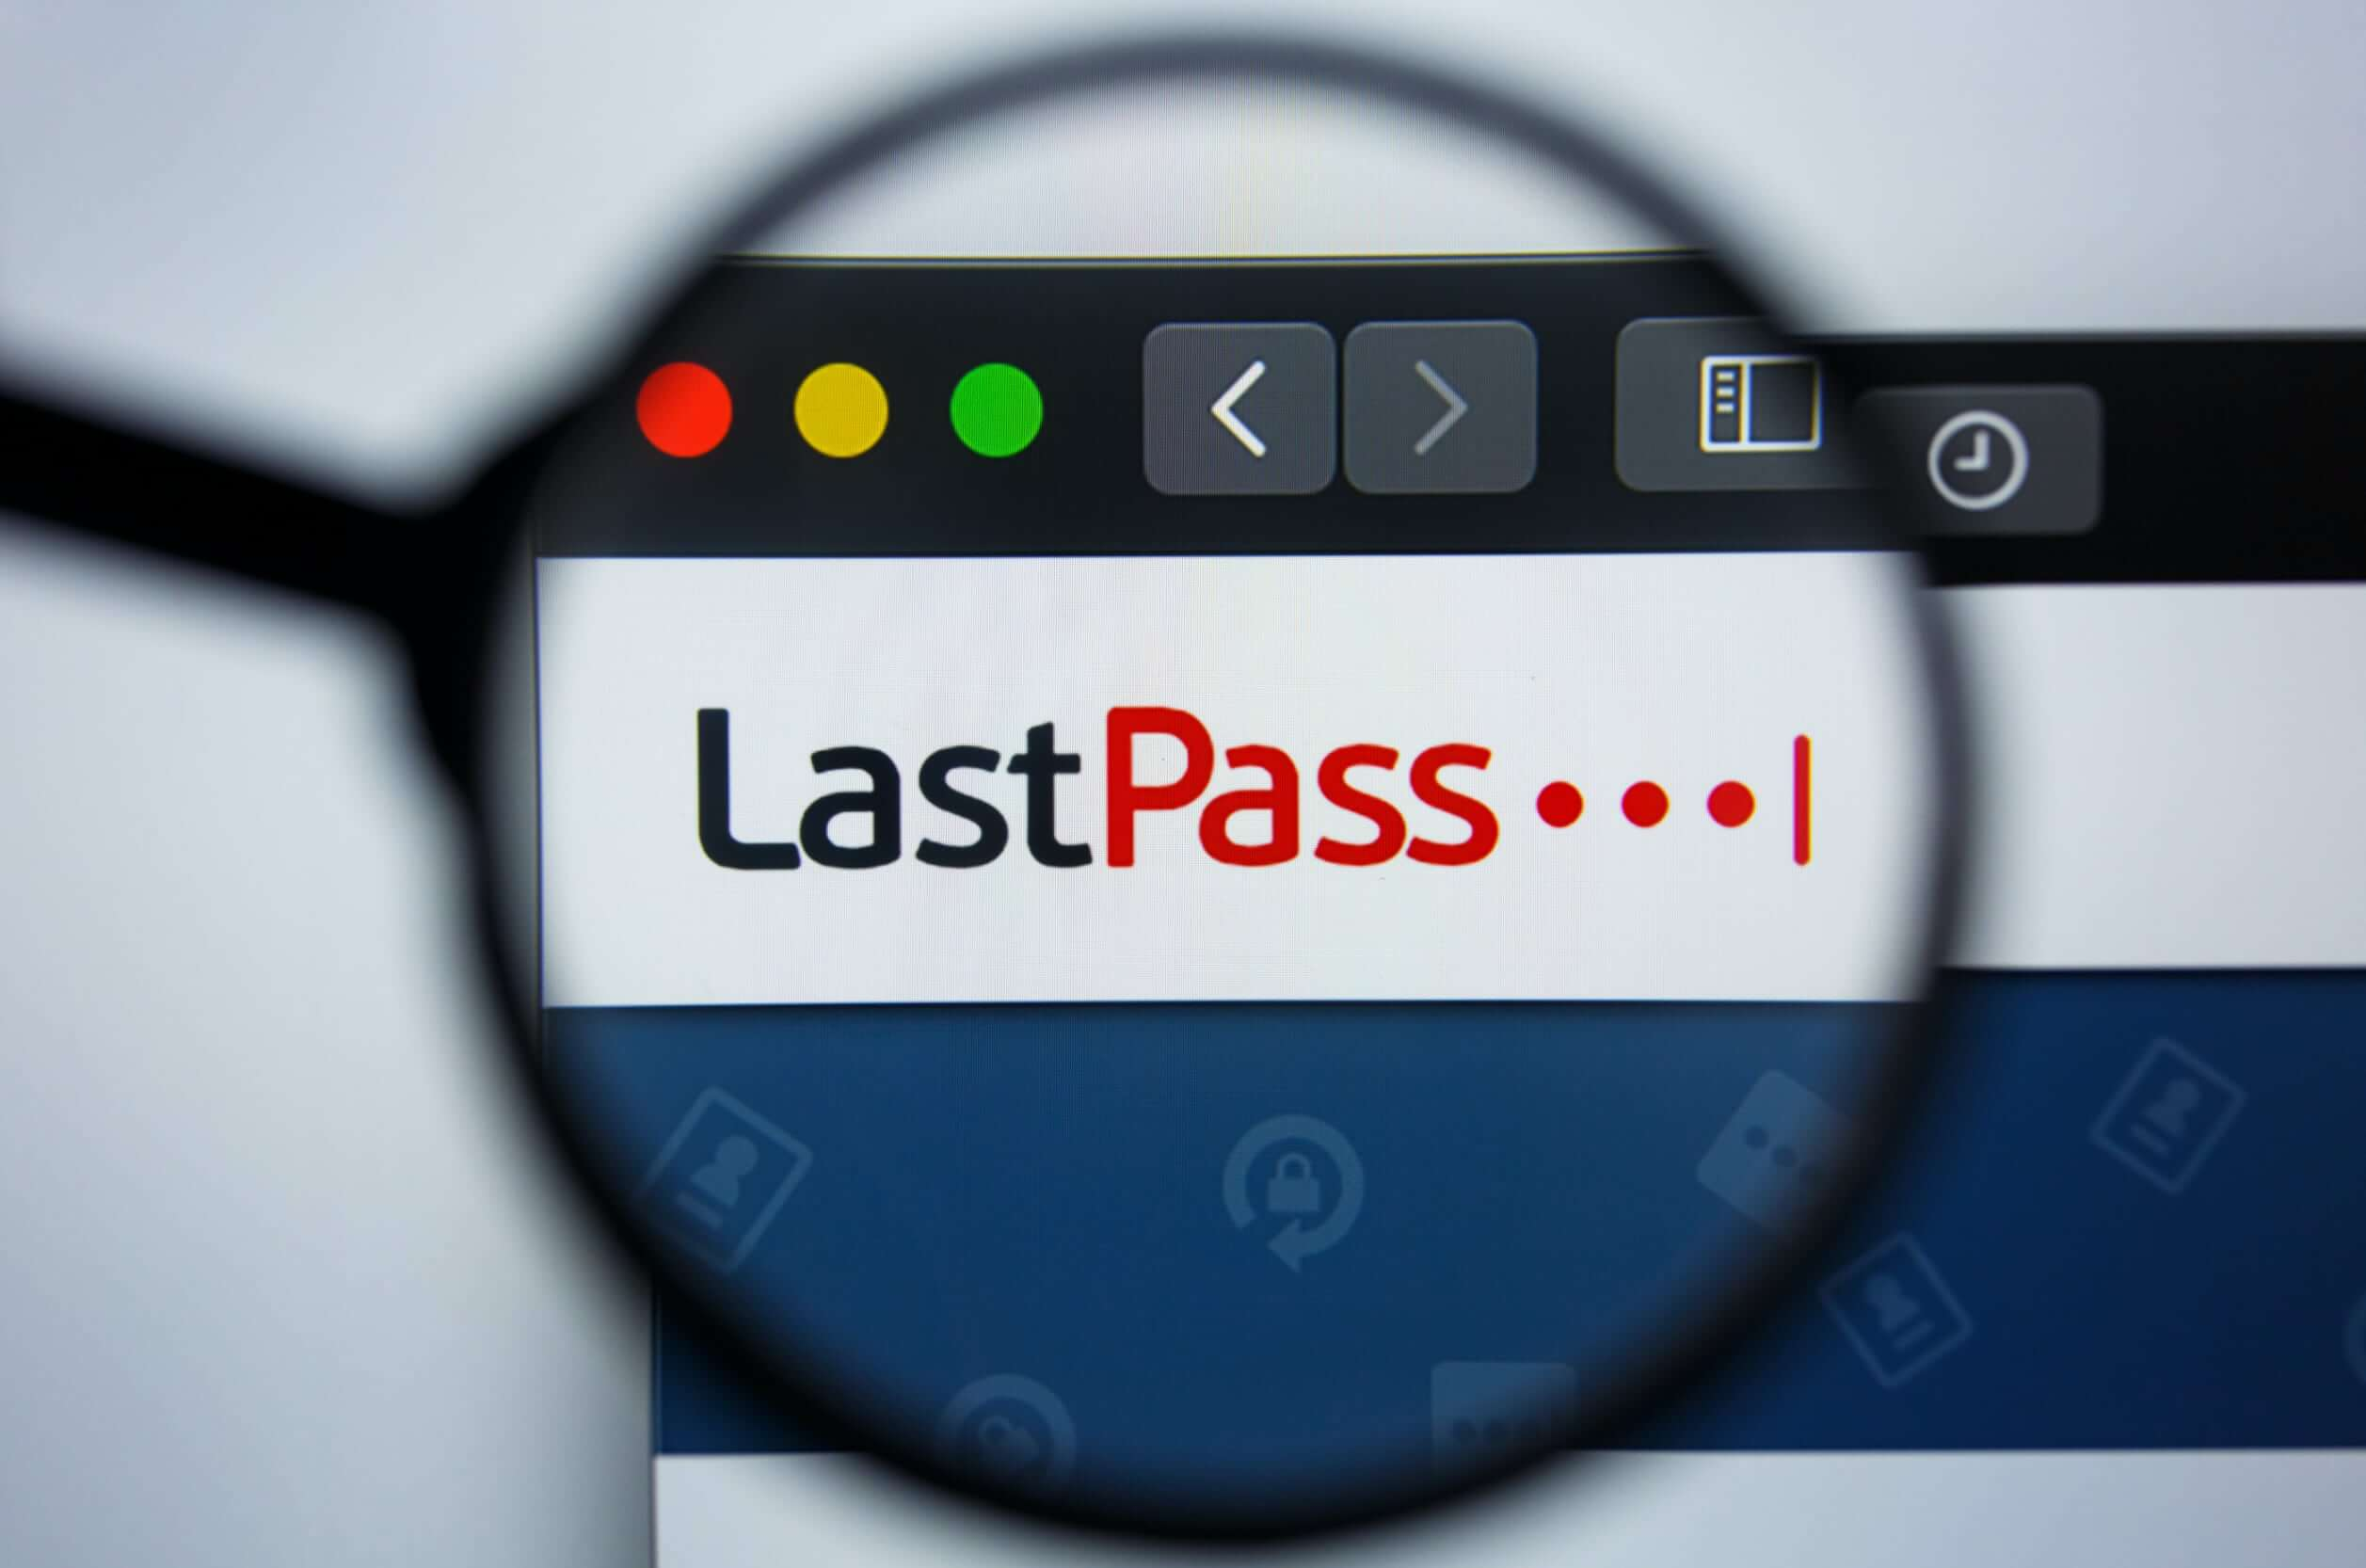 LastPass restores service availability after users report login and autofill issues